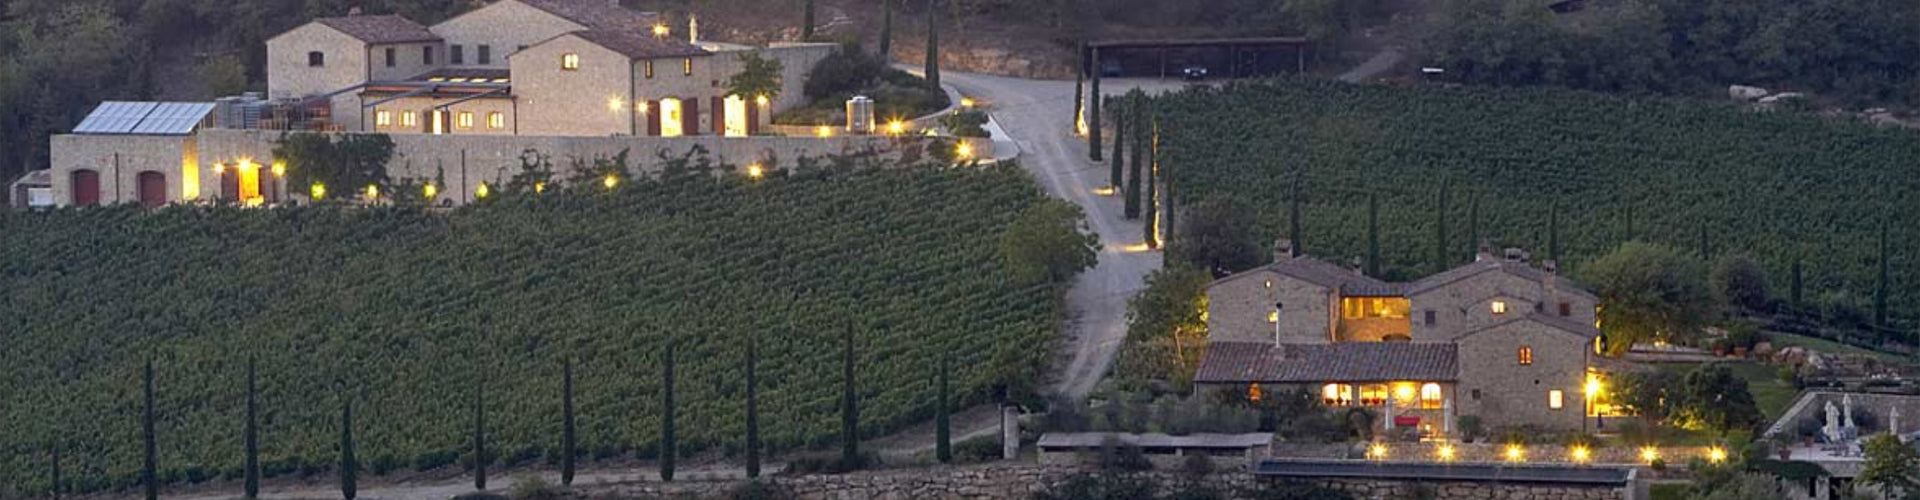 Brancaia Winery and Vineyards in Chianti Classico